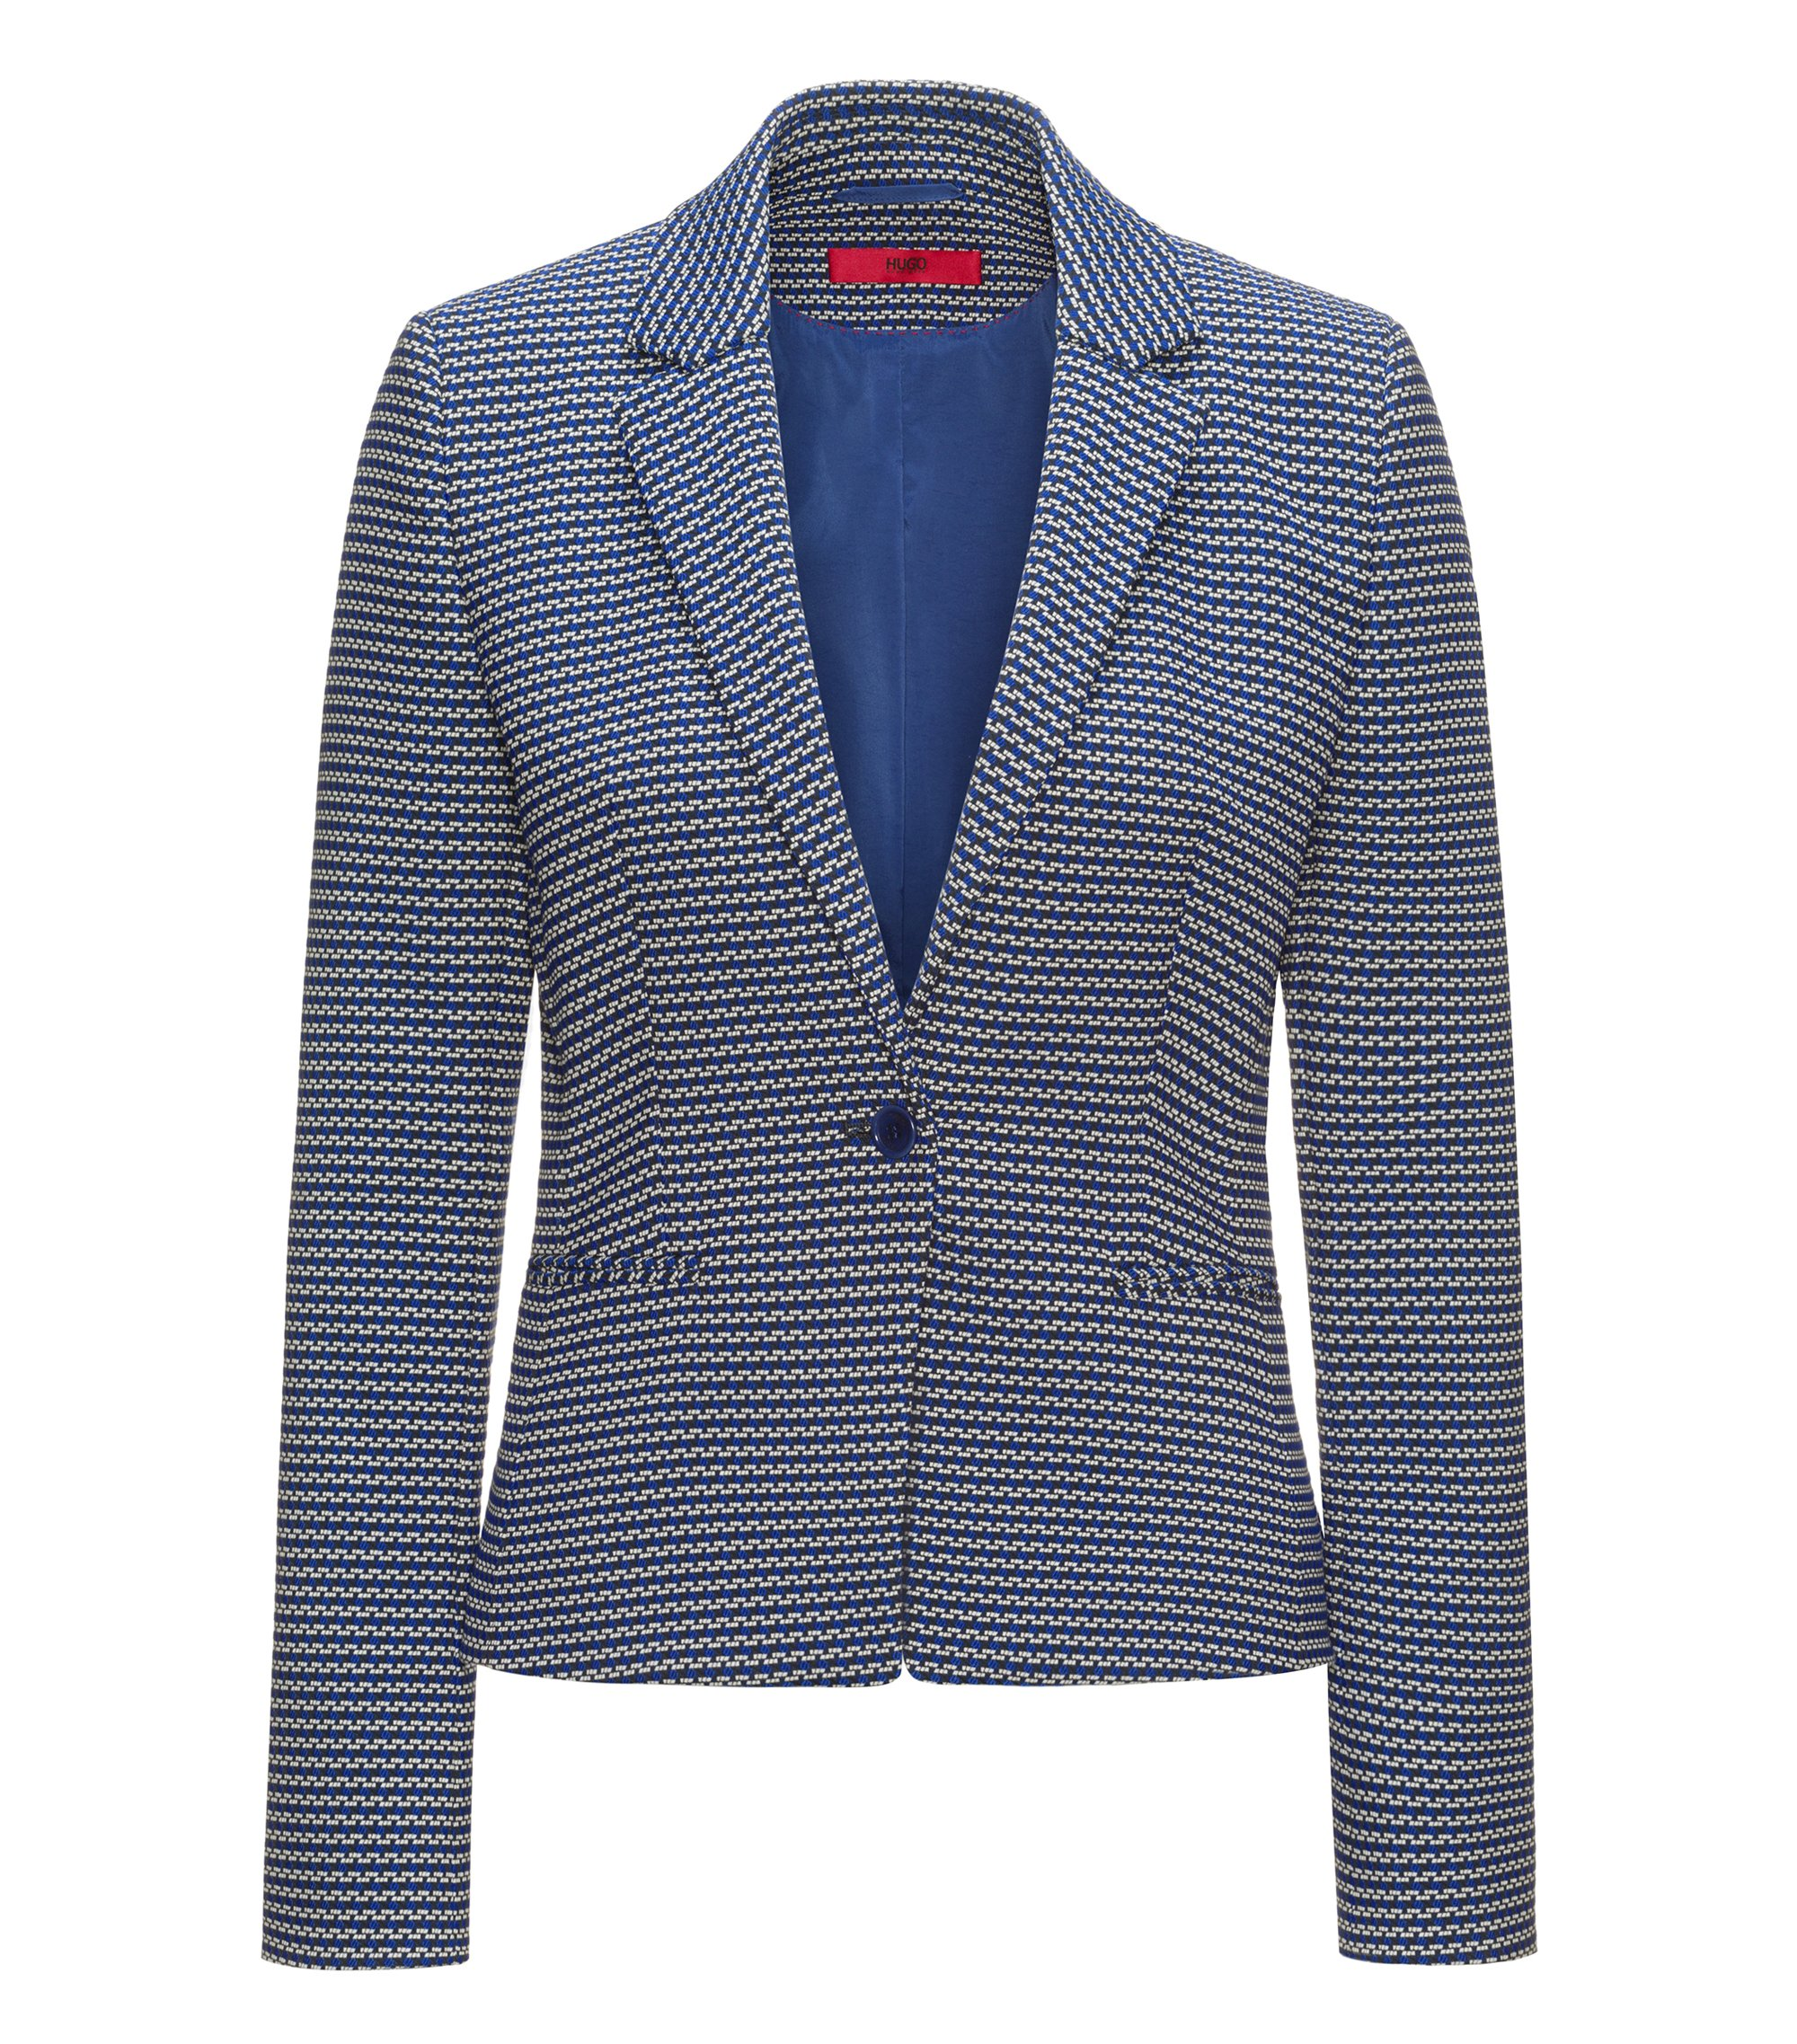 Slim-fit jacket in cotton-blend graphic jacquard, Patterned